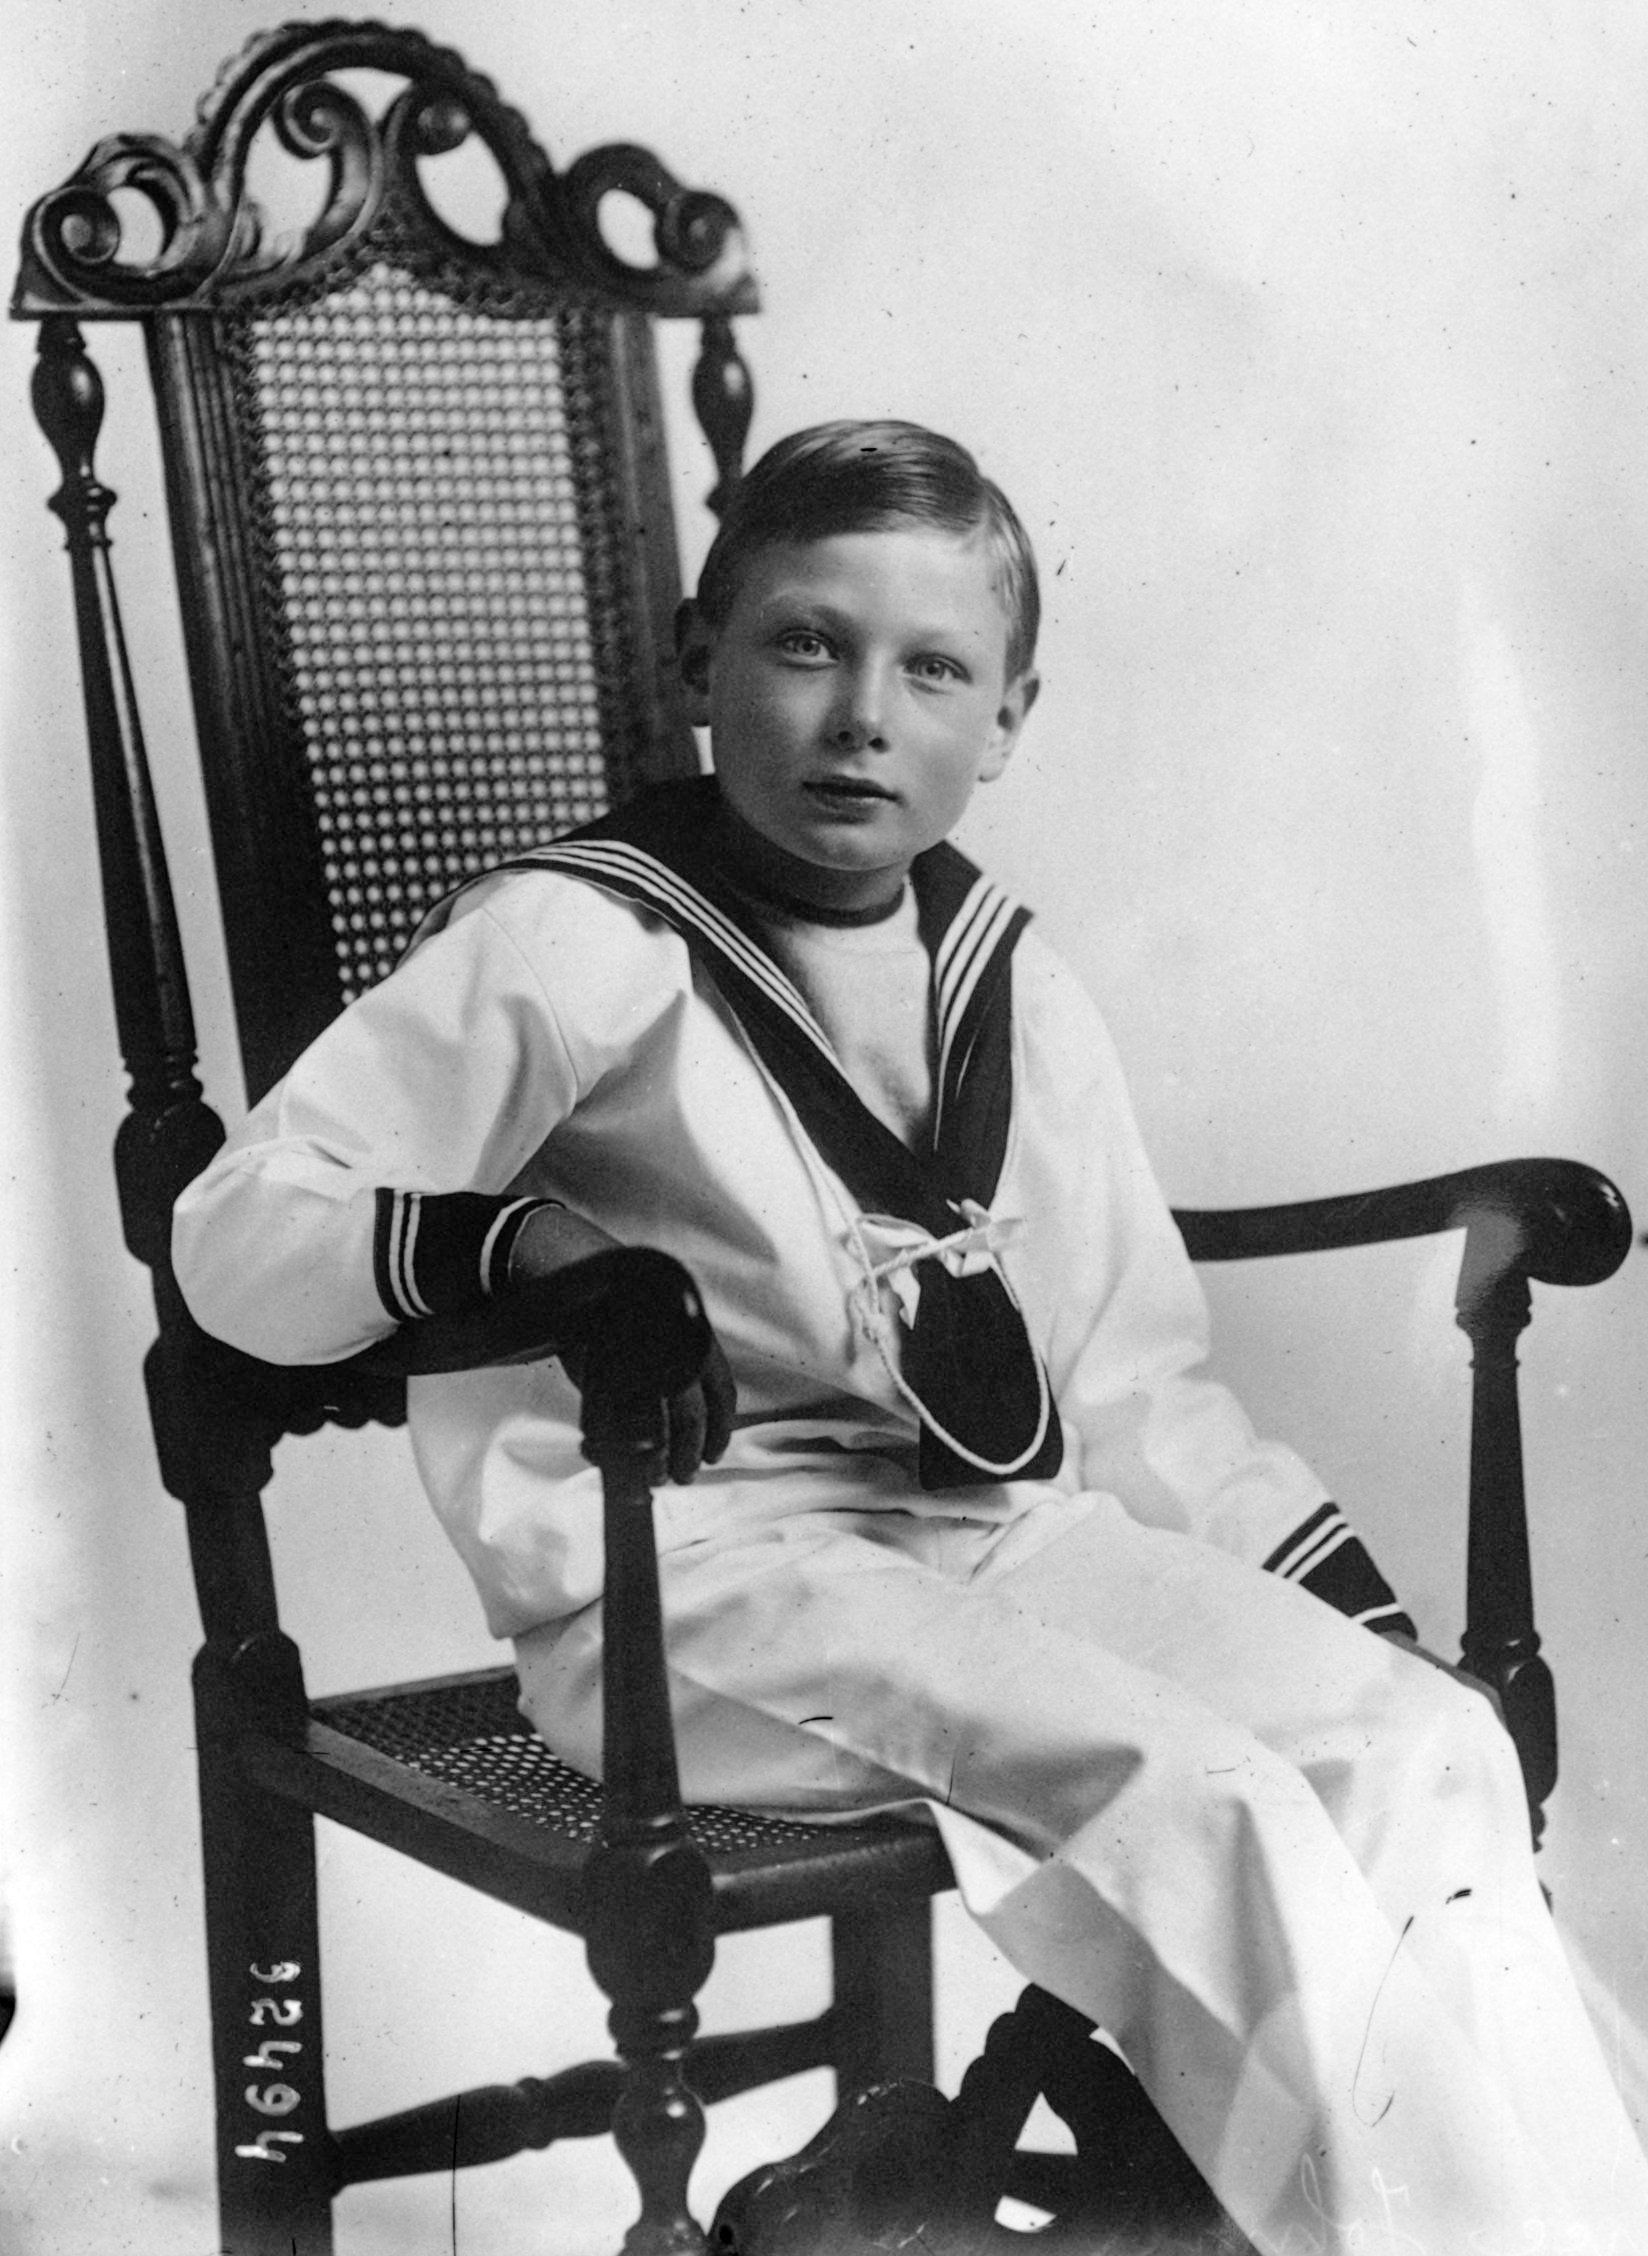 Prince John of the United Kingdom was son of King George V and Queen Mary.